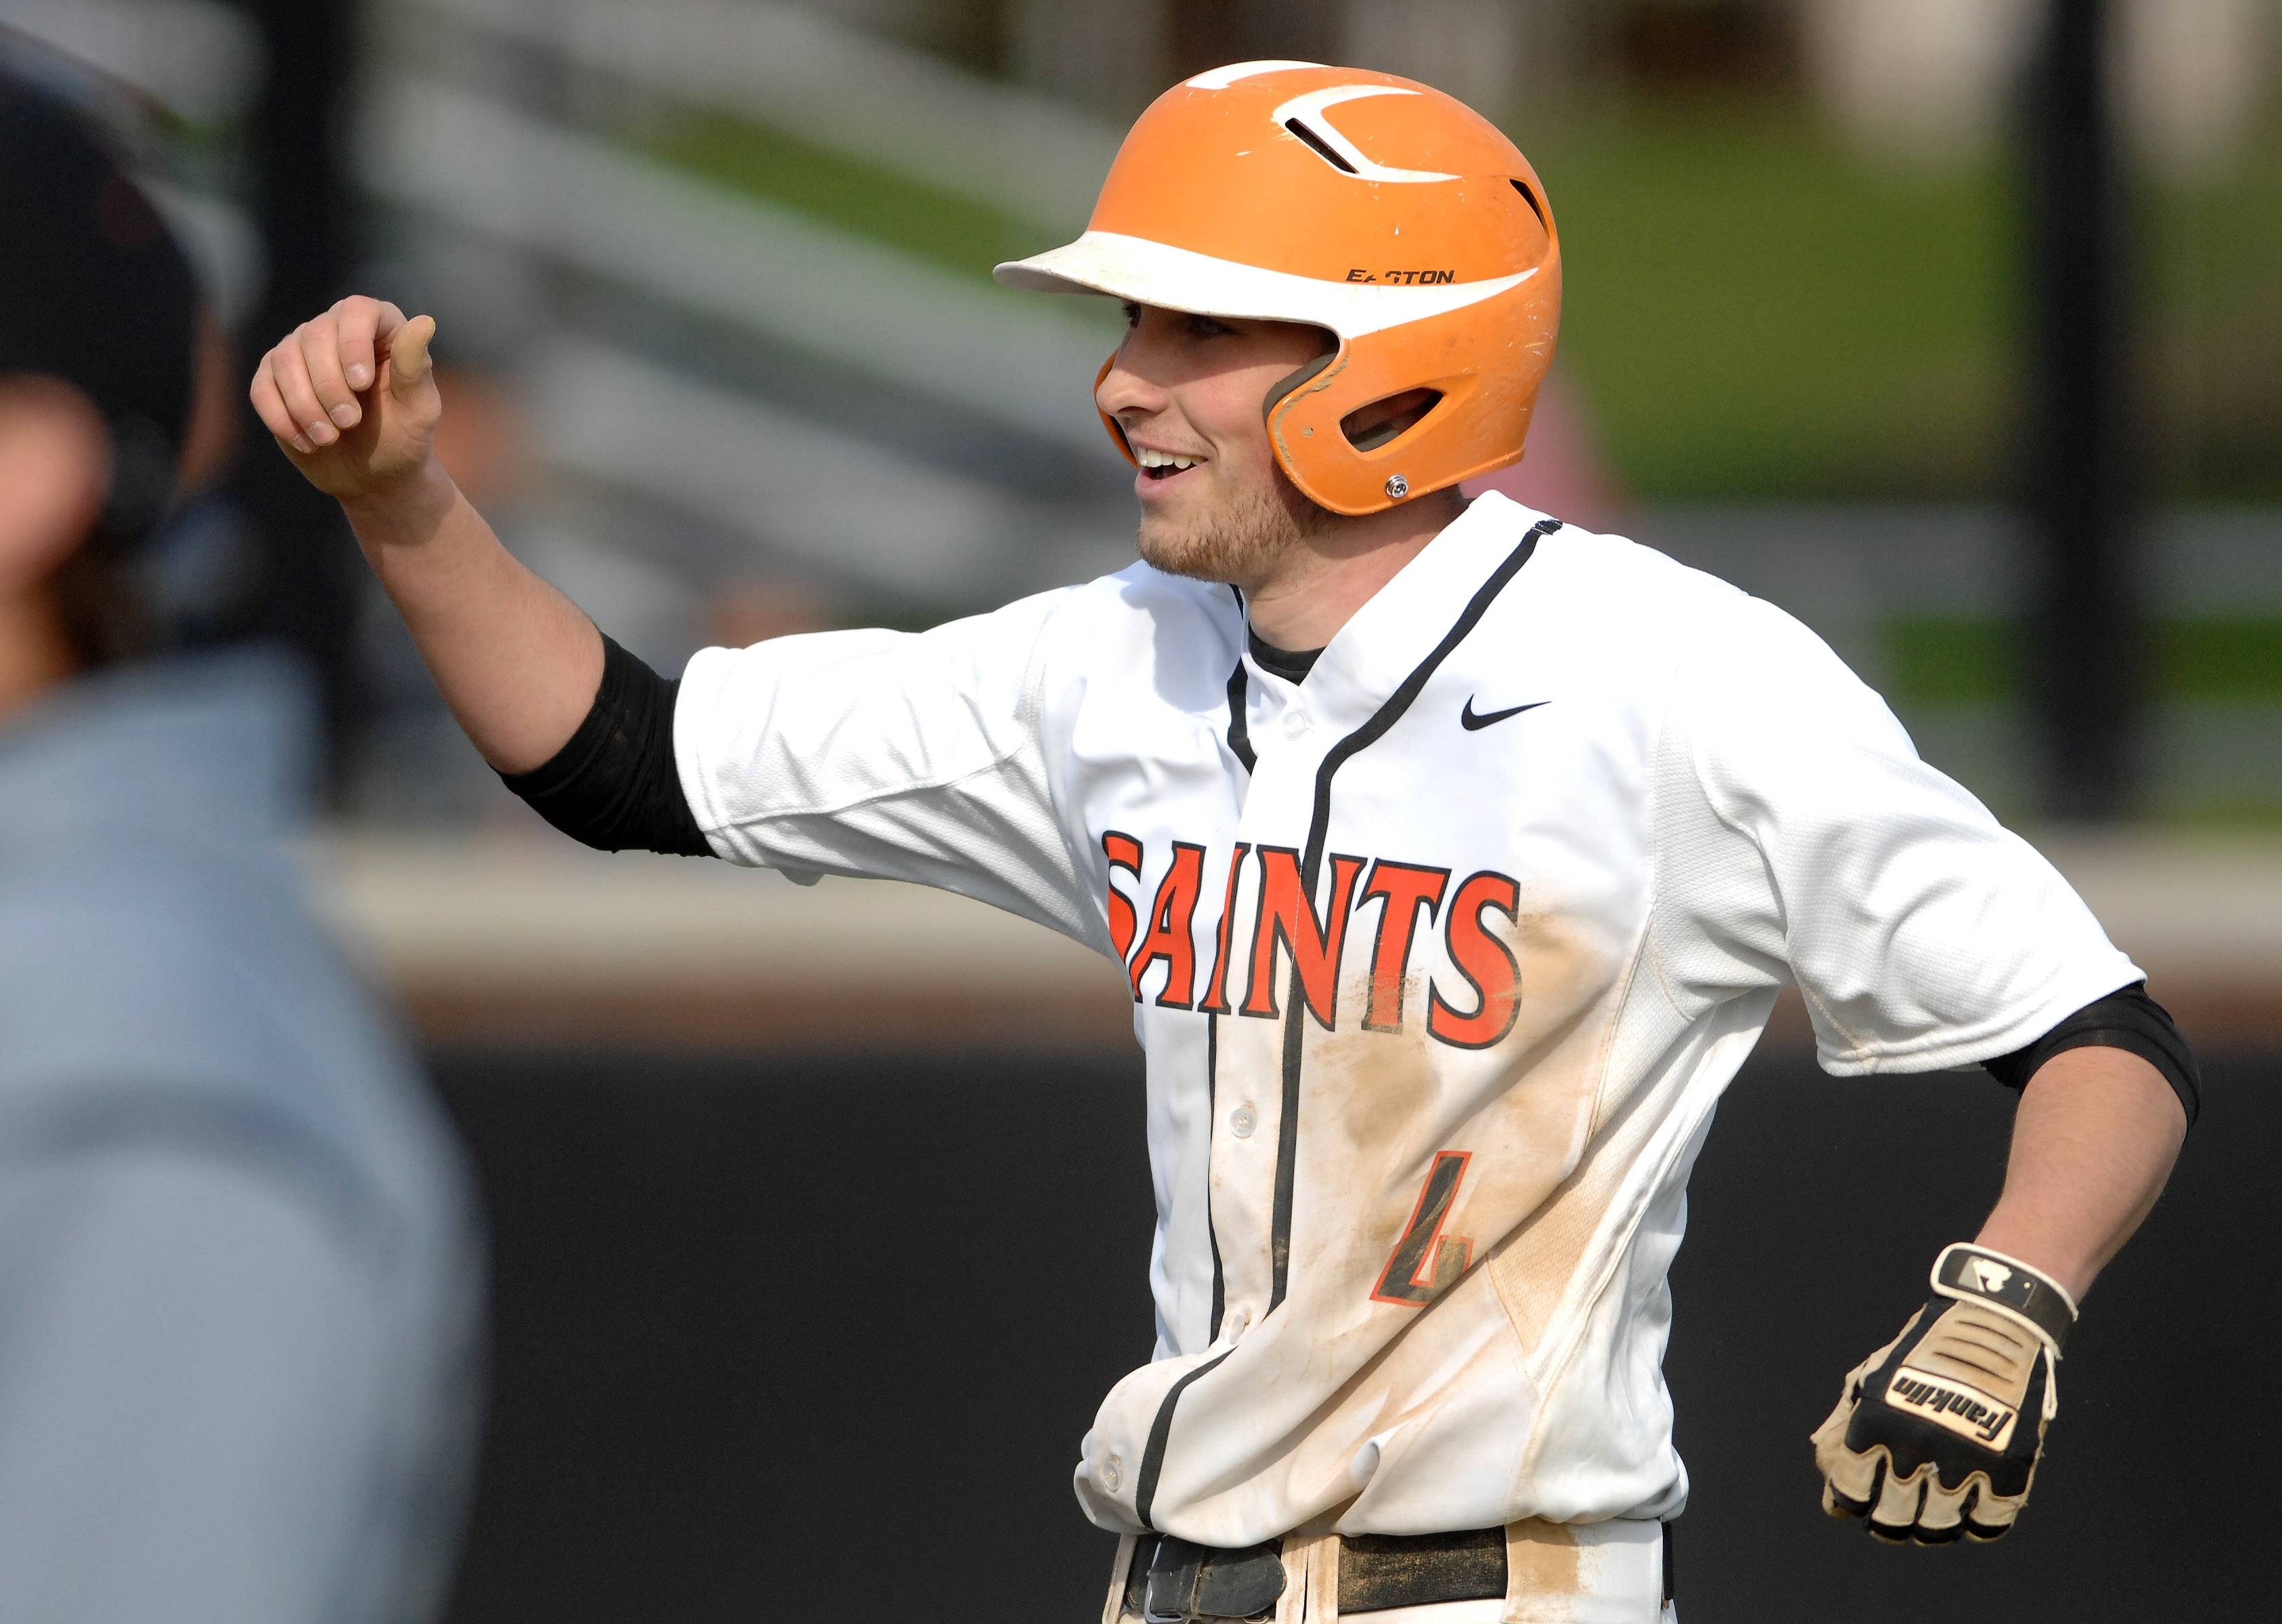 St. Charles East's Charles Alex Abate is congratulated as he returns to the dugout after an RBI double during Tuesday's game at St. Charles East. He was thrown out trying to stretch it into a triple.